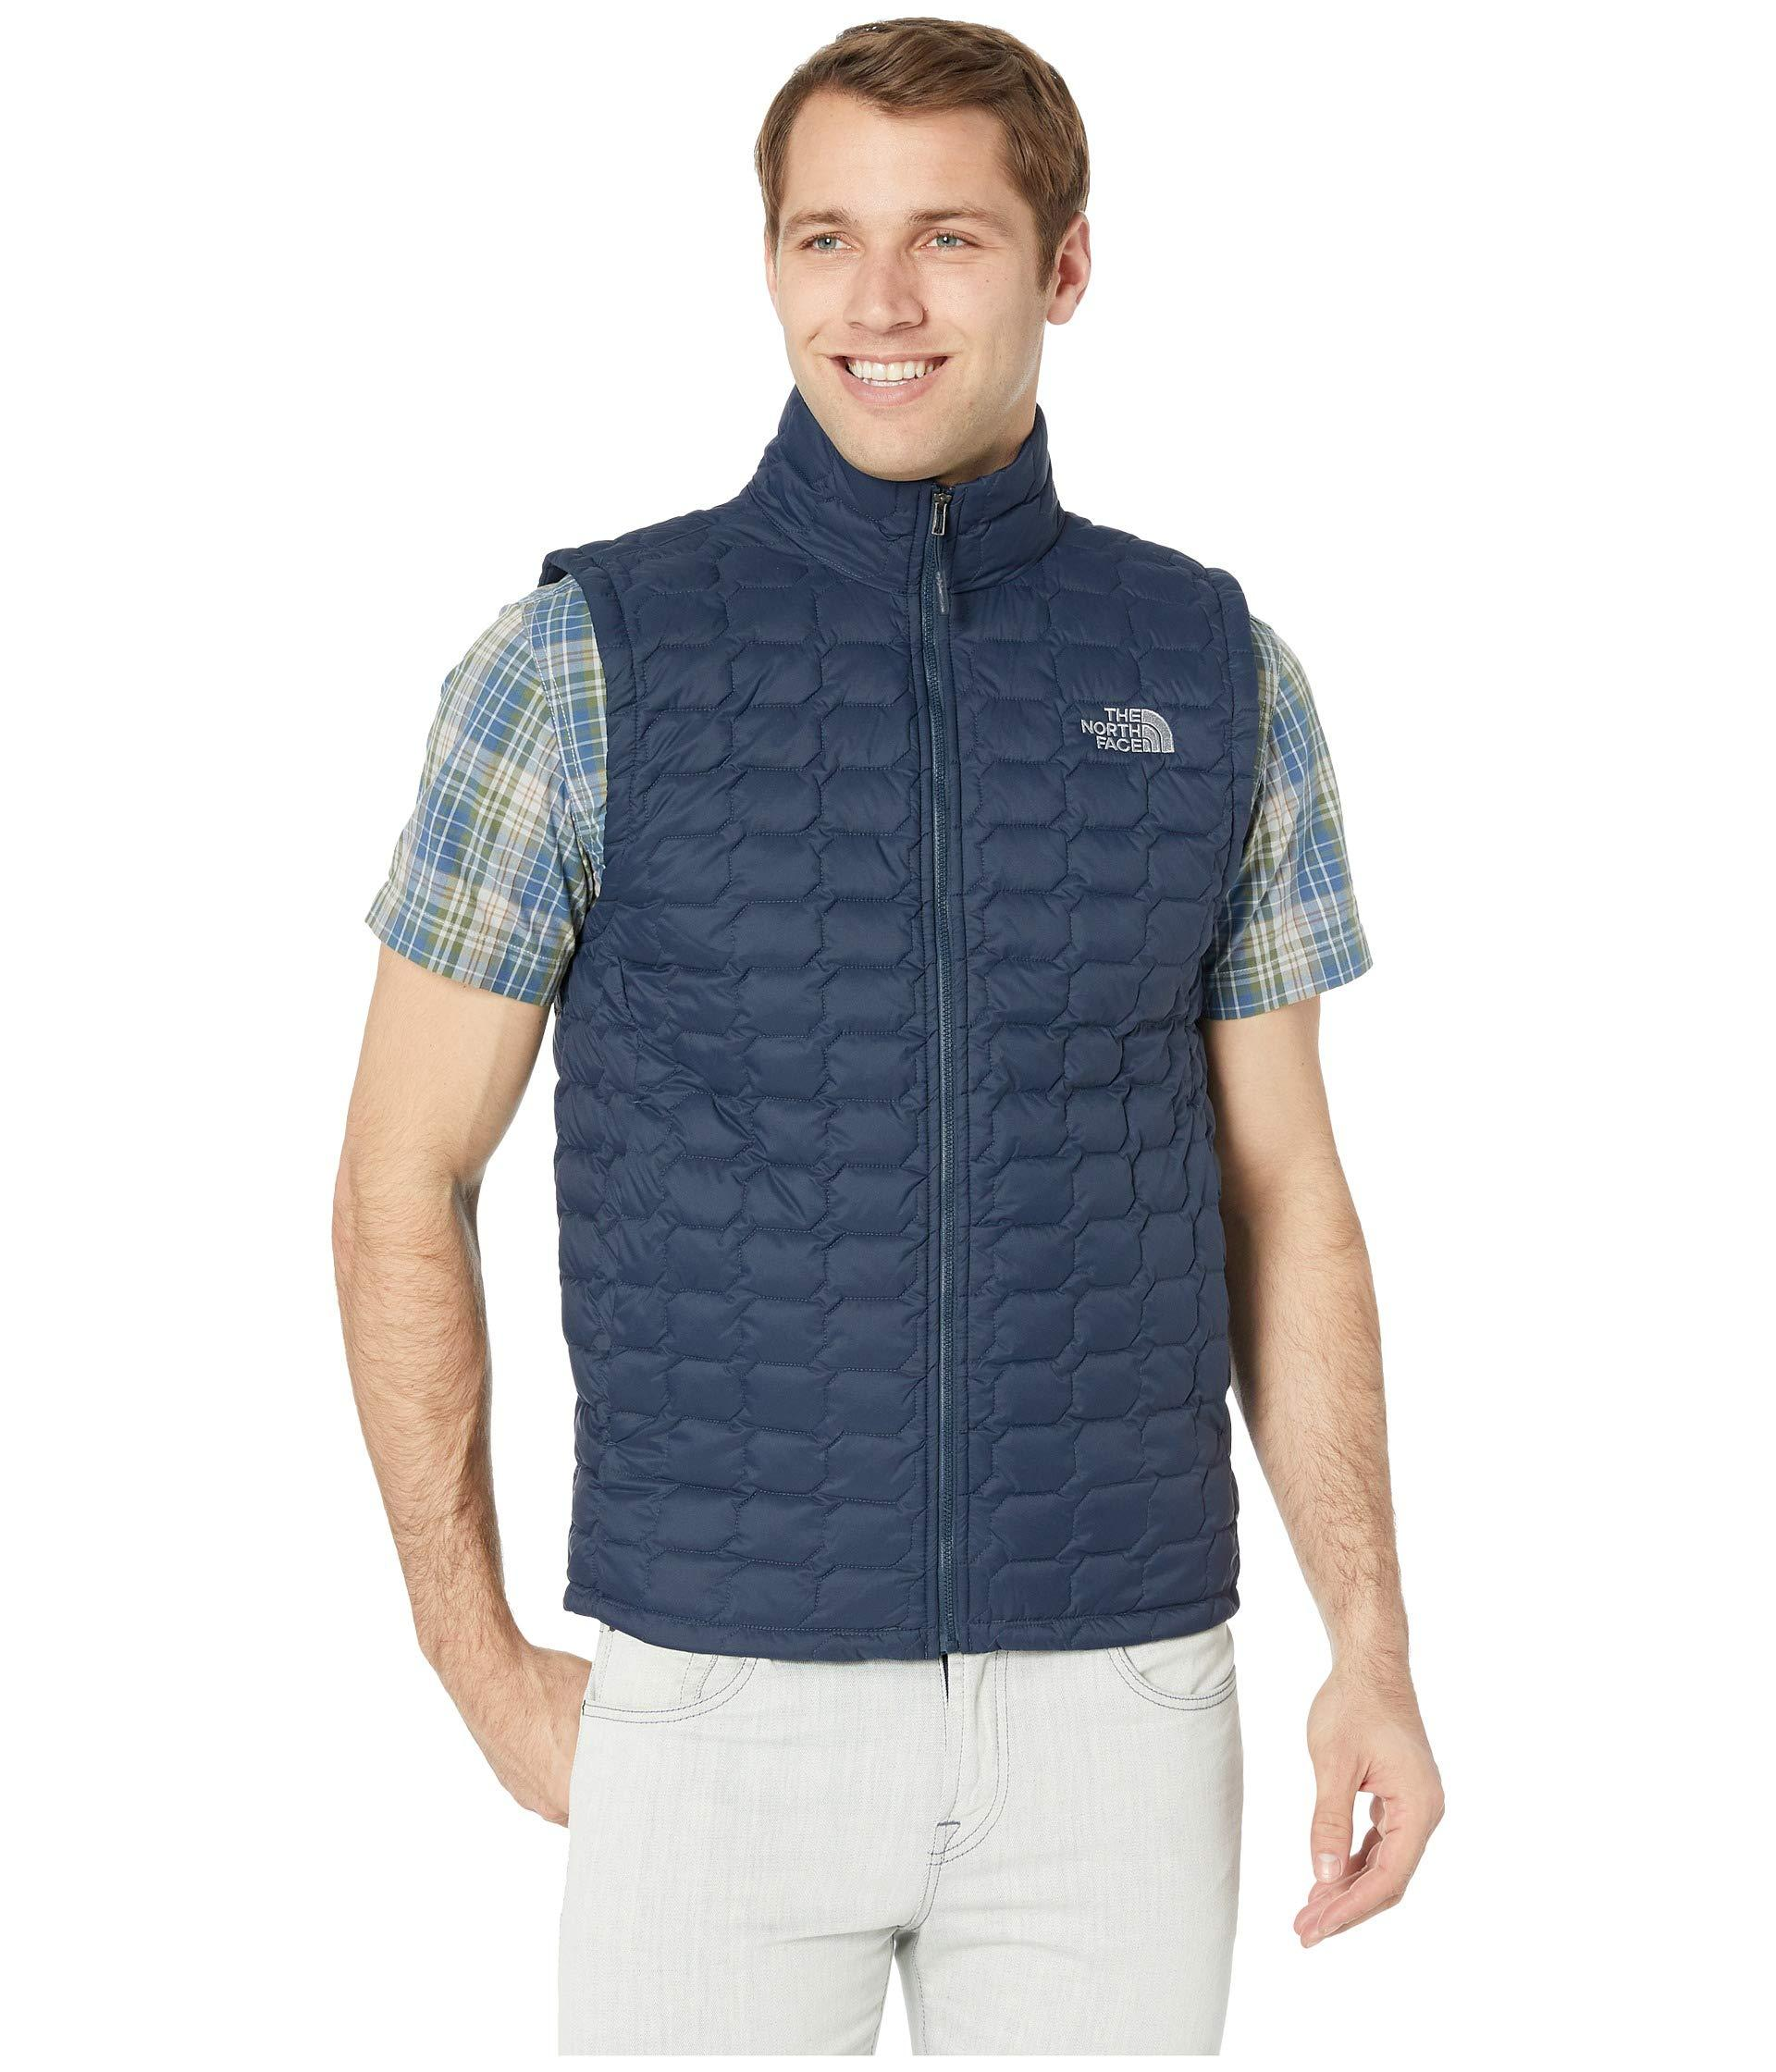 0d9edffb1 Lyst - The North Face Thermoball Vest (peyote Beige Woodchip Camo ...